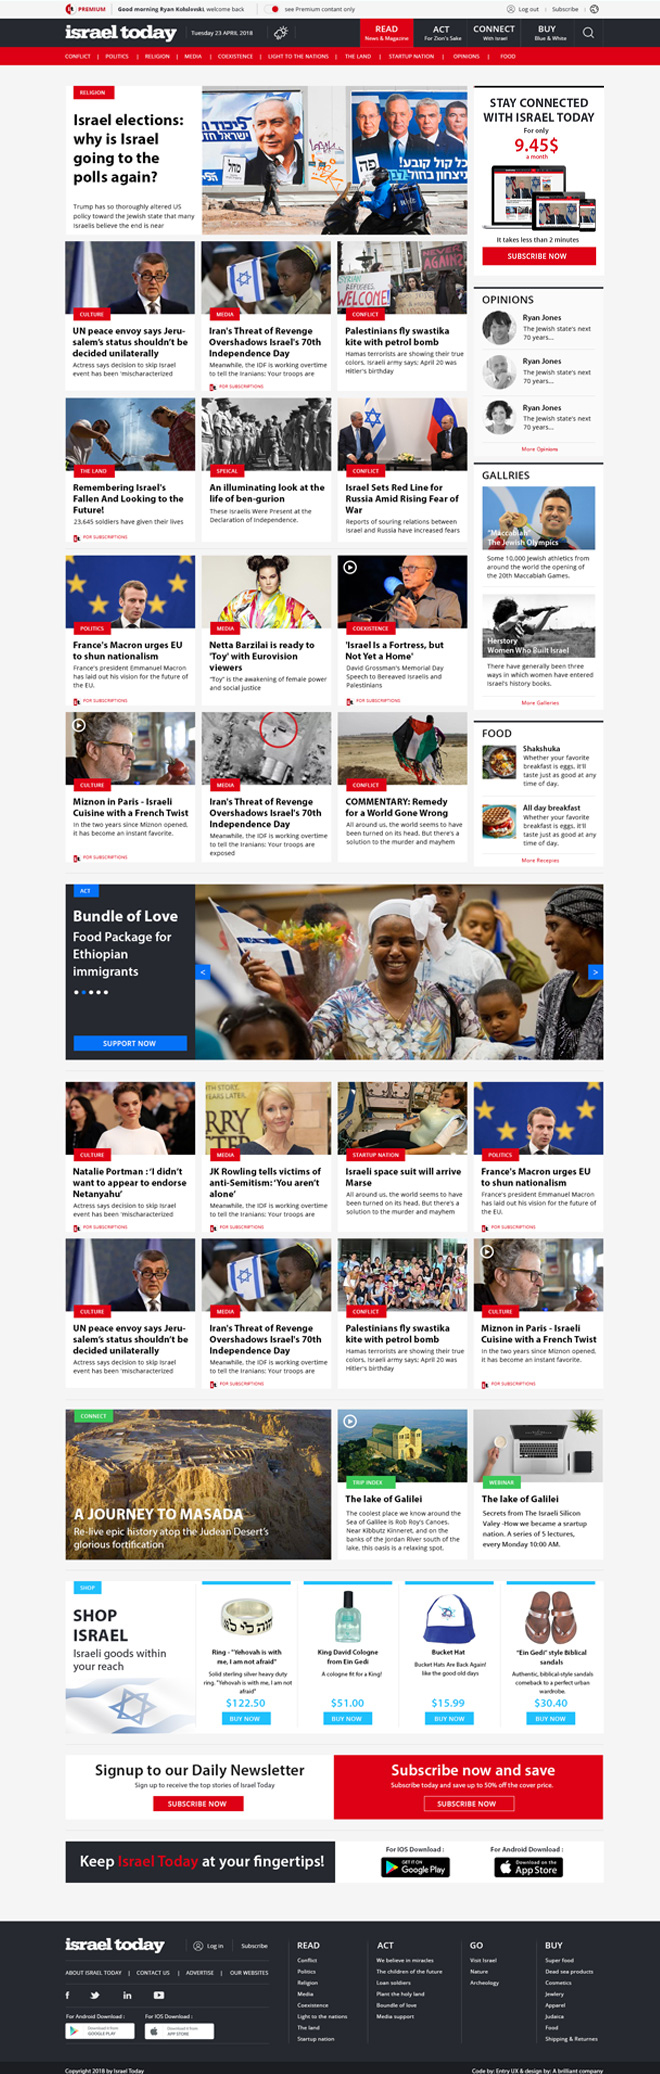 israel today home page design